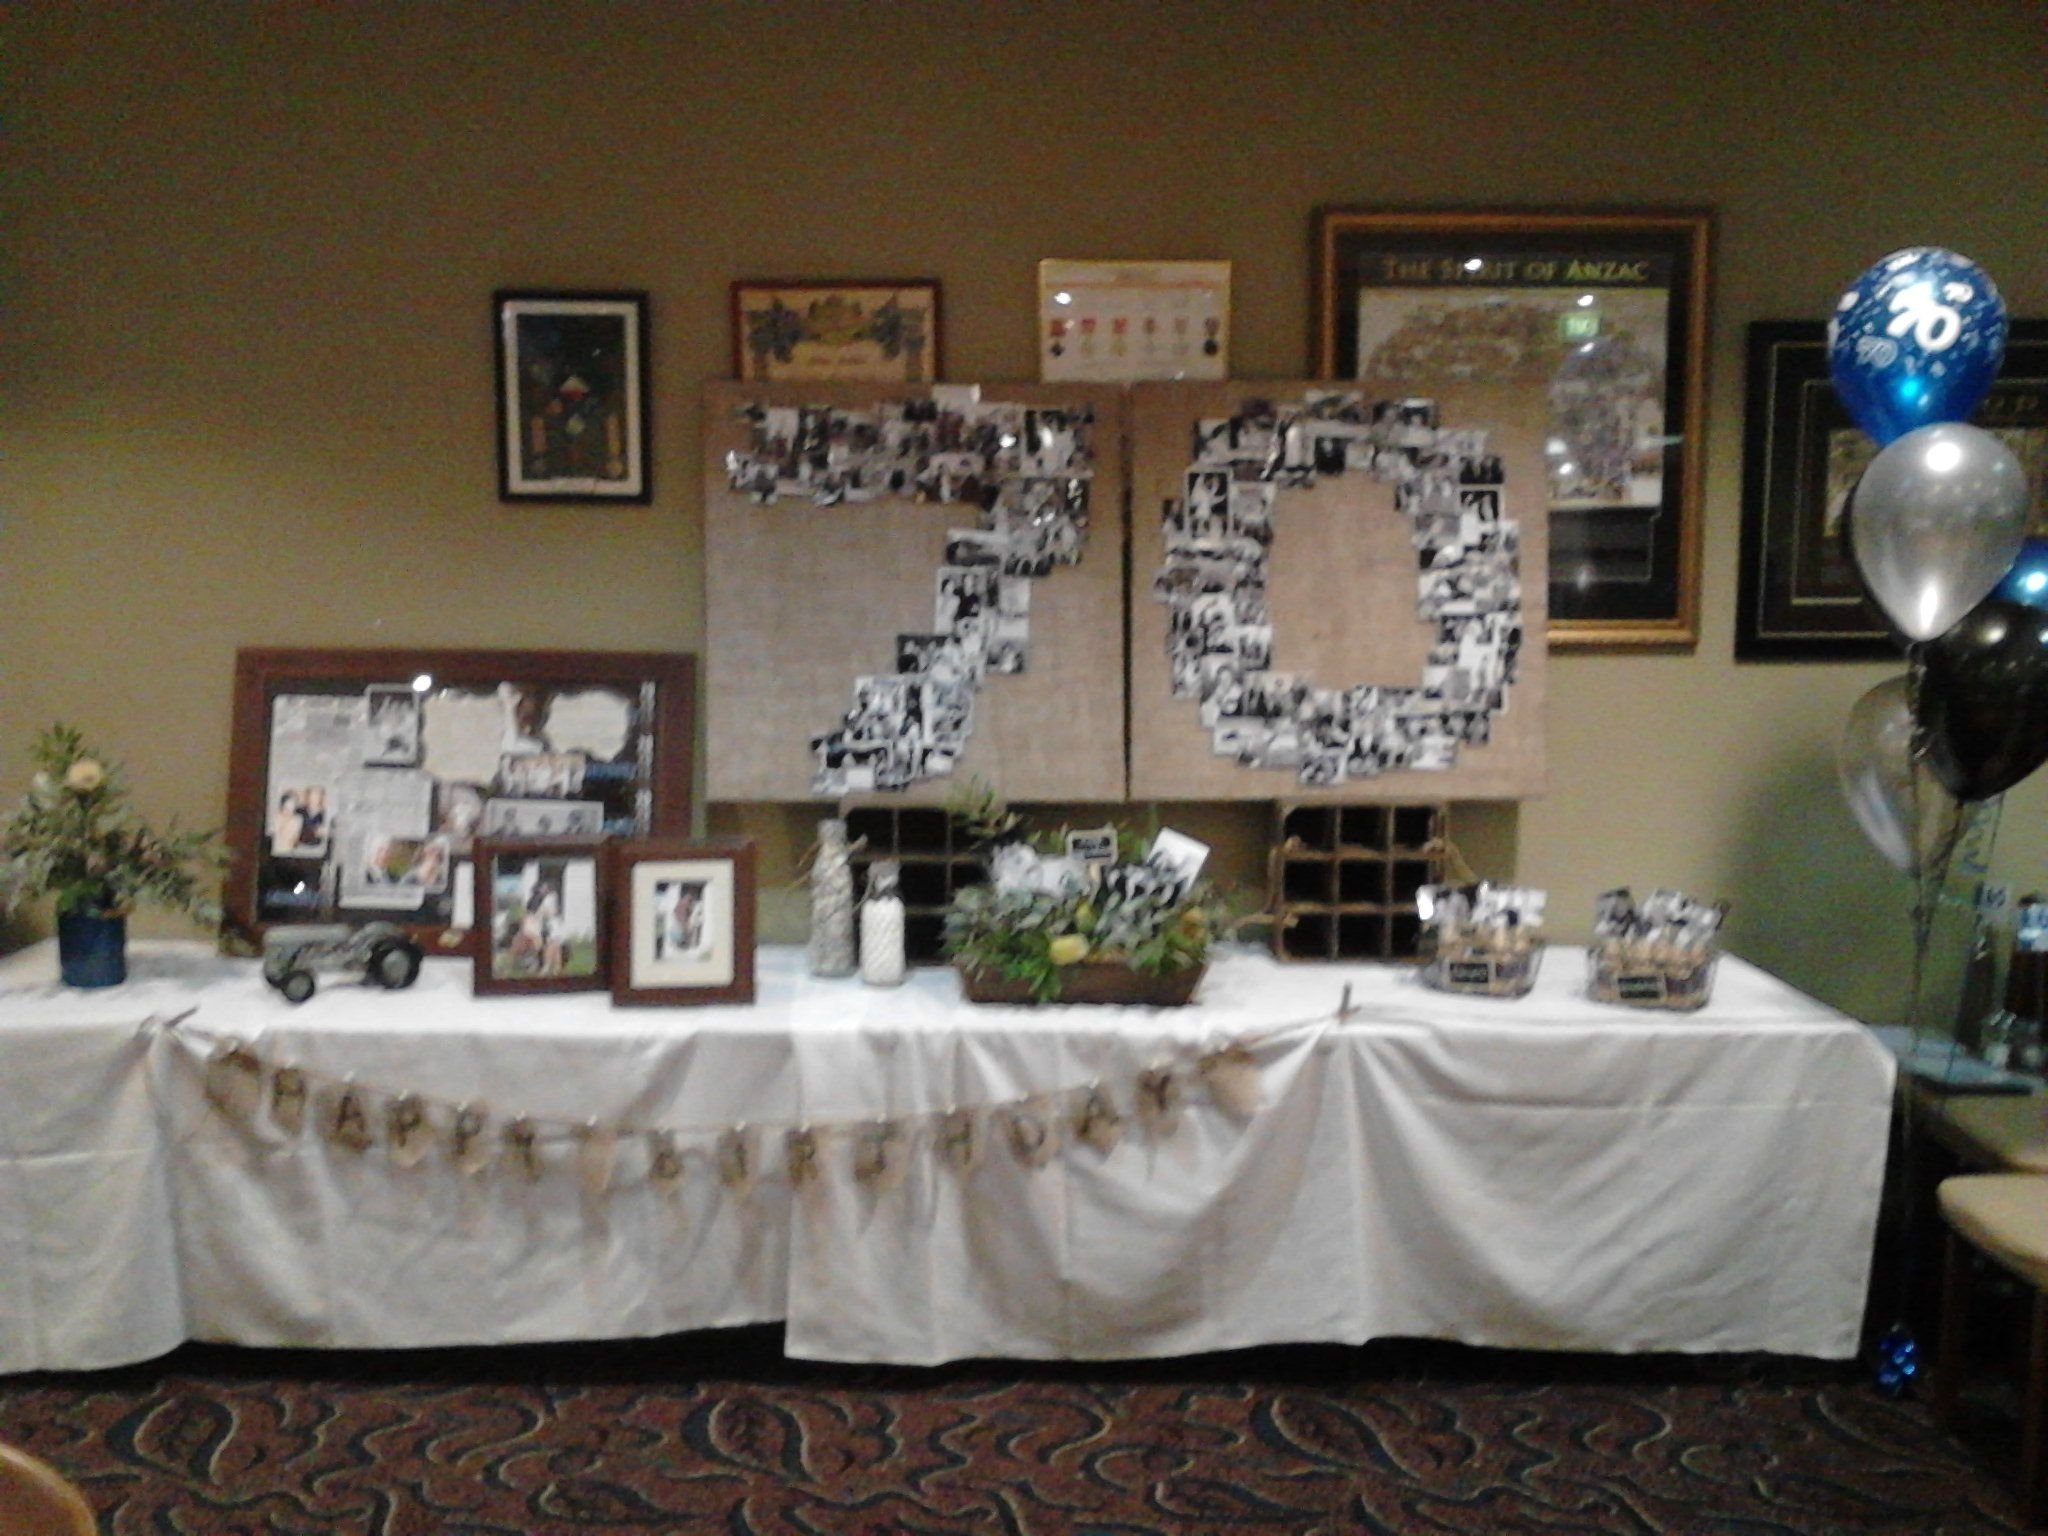 10 Stunning 70 Year Old Birthday Party Ideas 70th birthday decorations i just love the way this looks we 1 2020